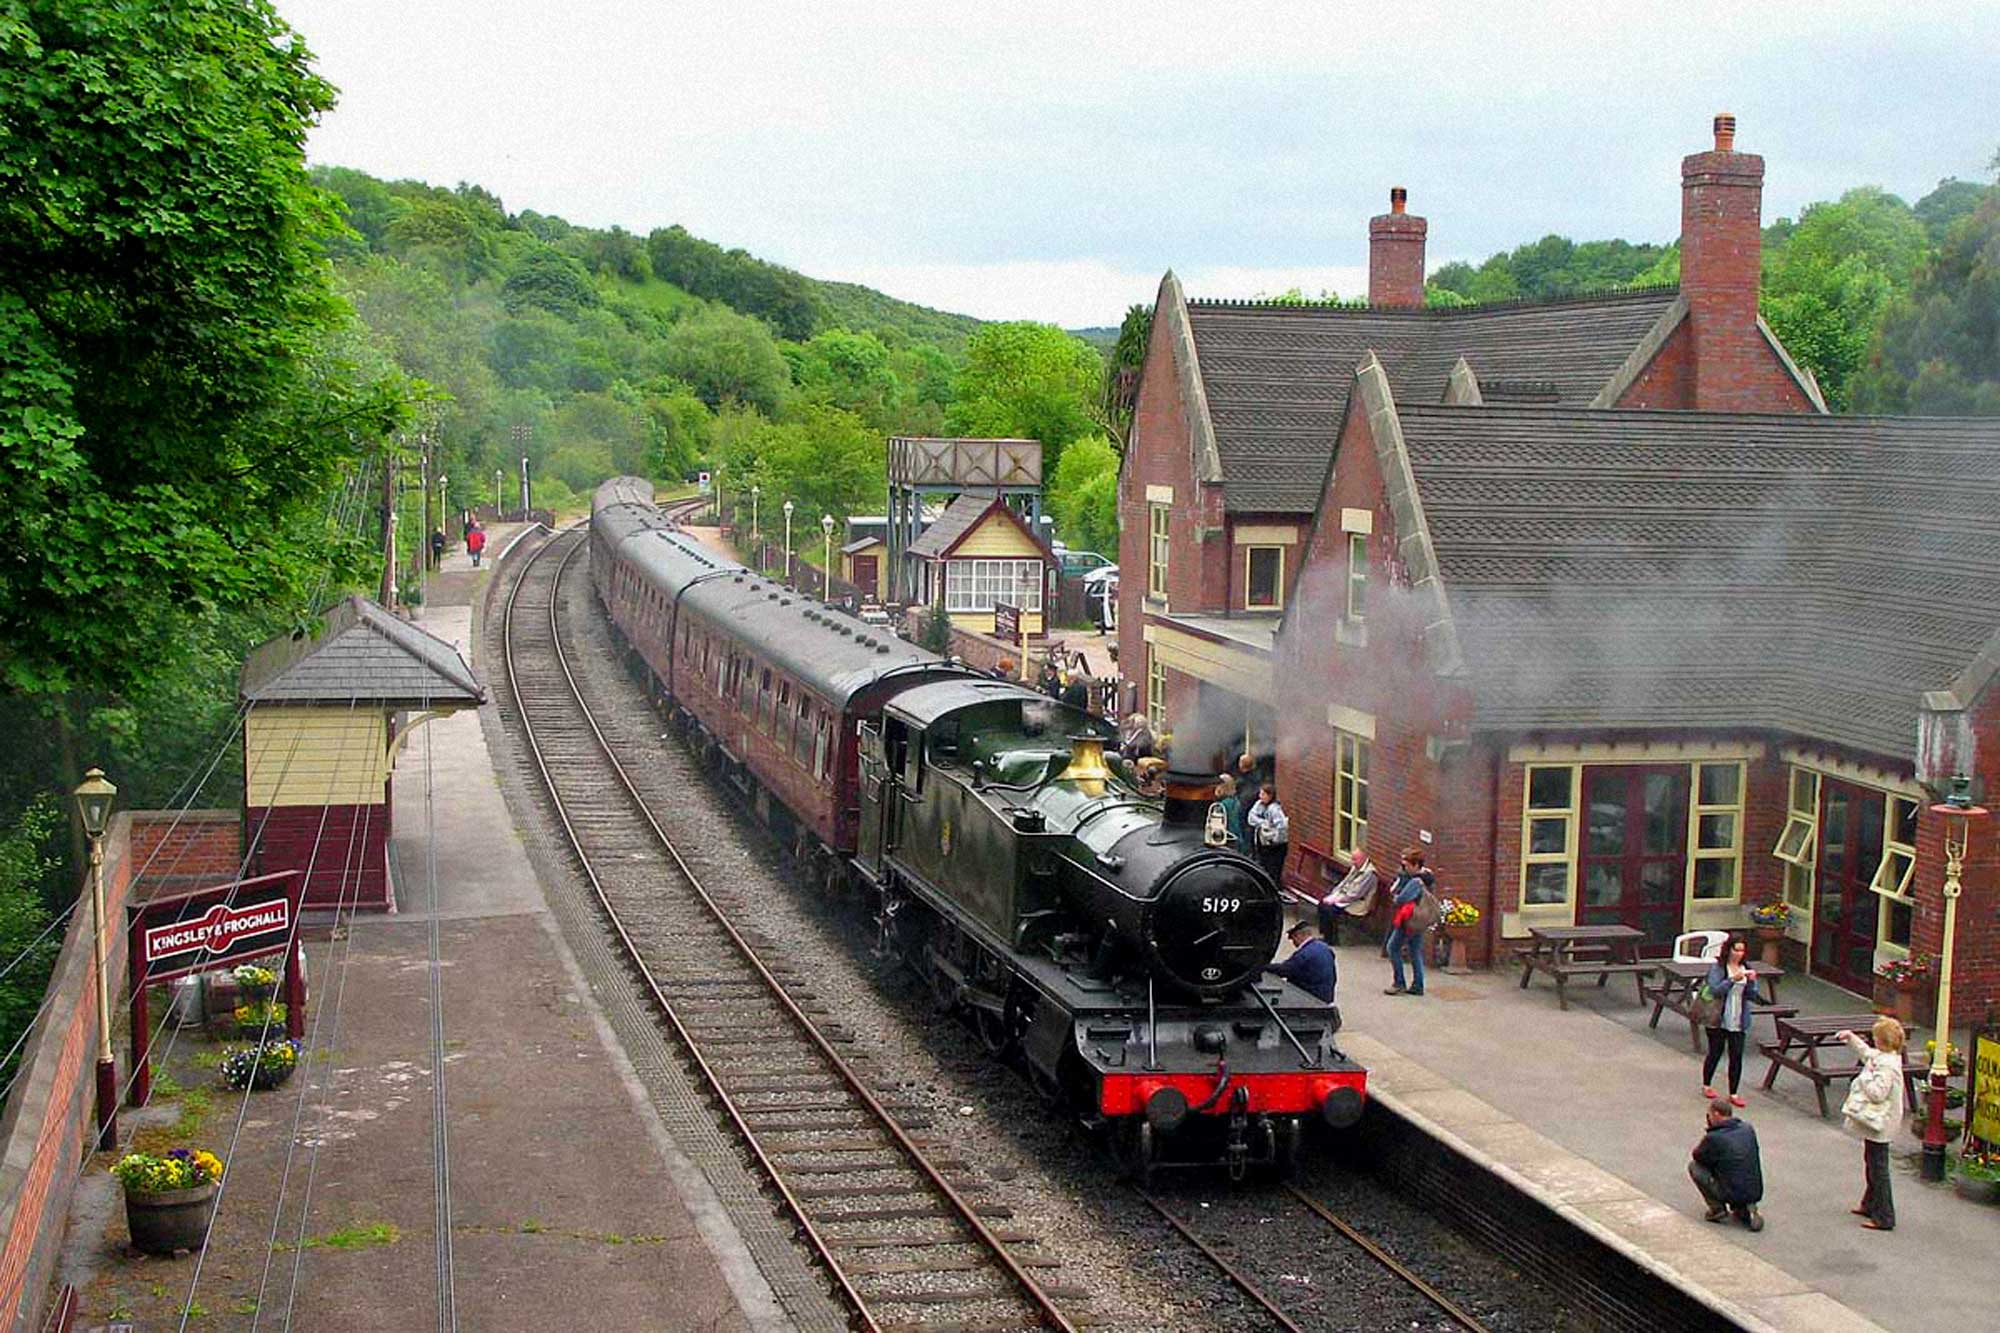 kingsley and froghall steam railway station and visitor centre